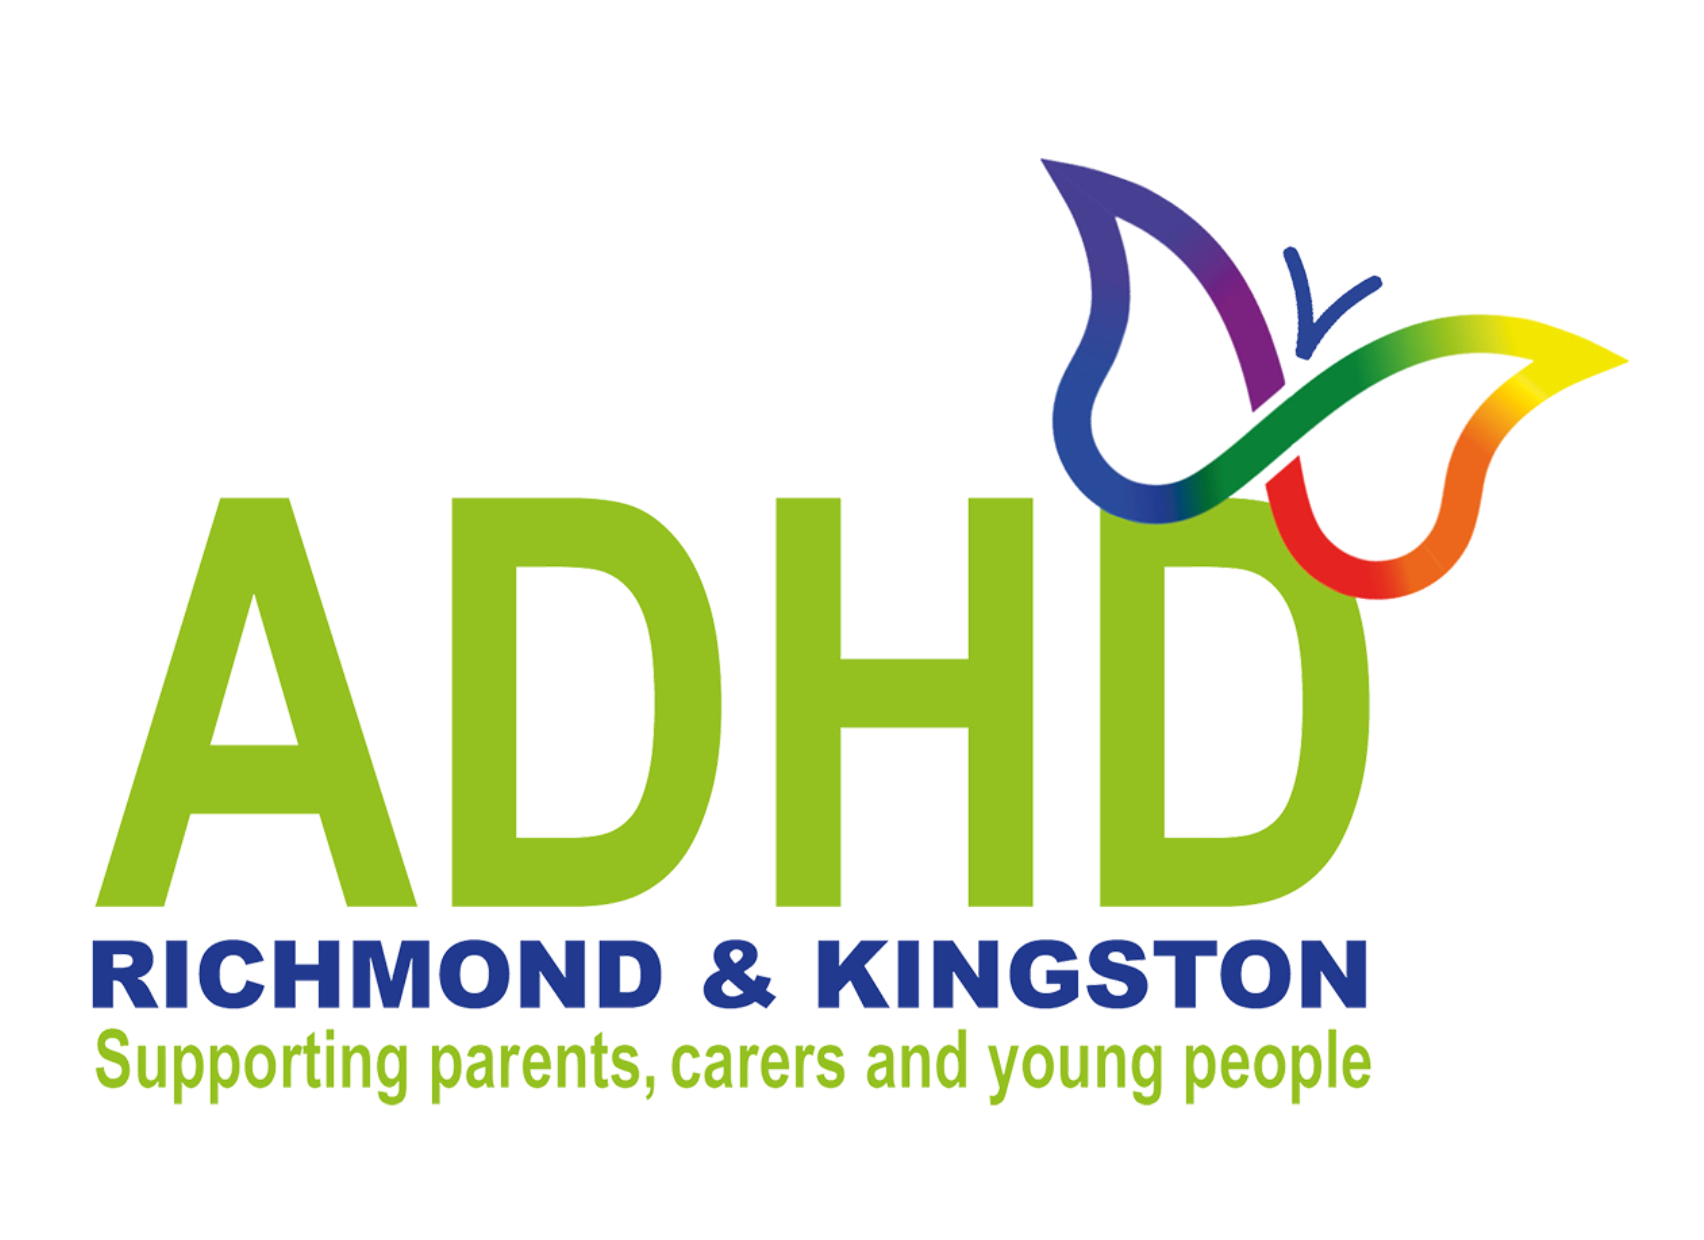 ADHD Richmond and Kingston